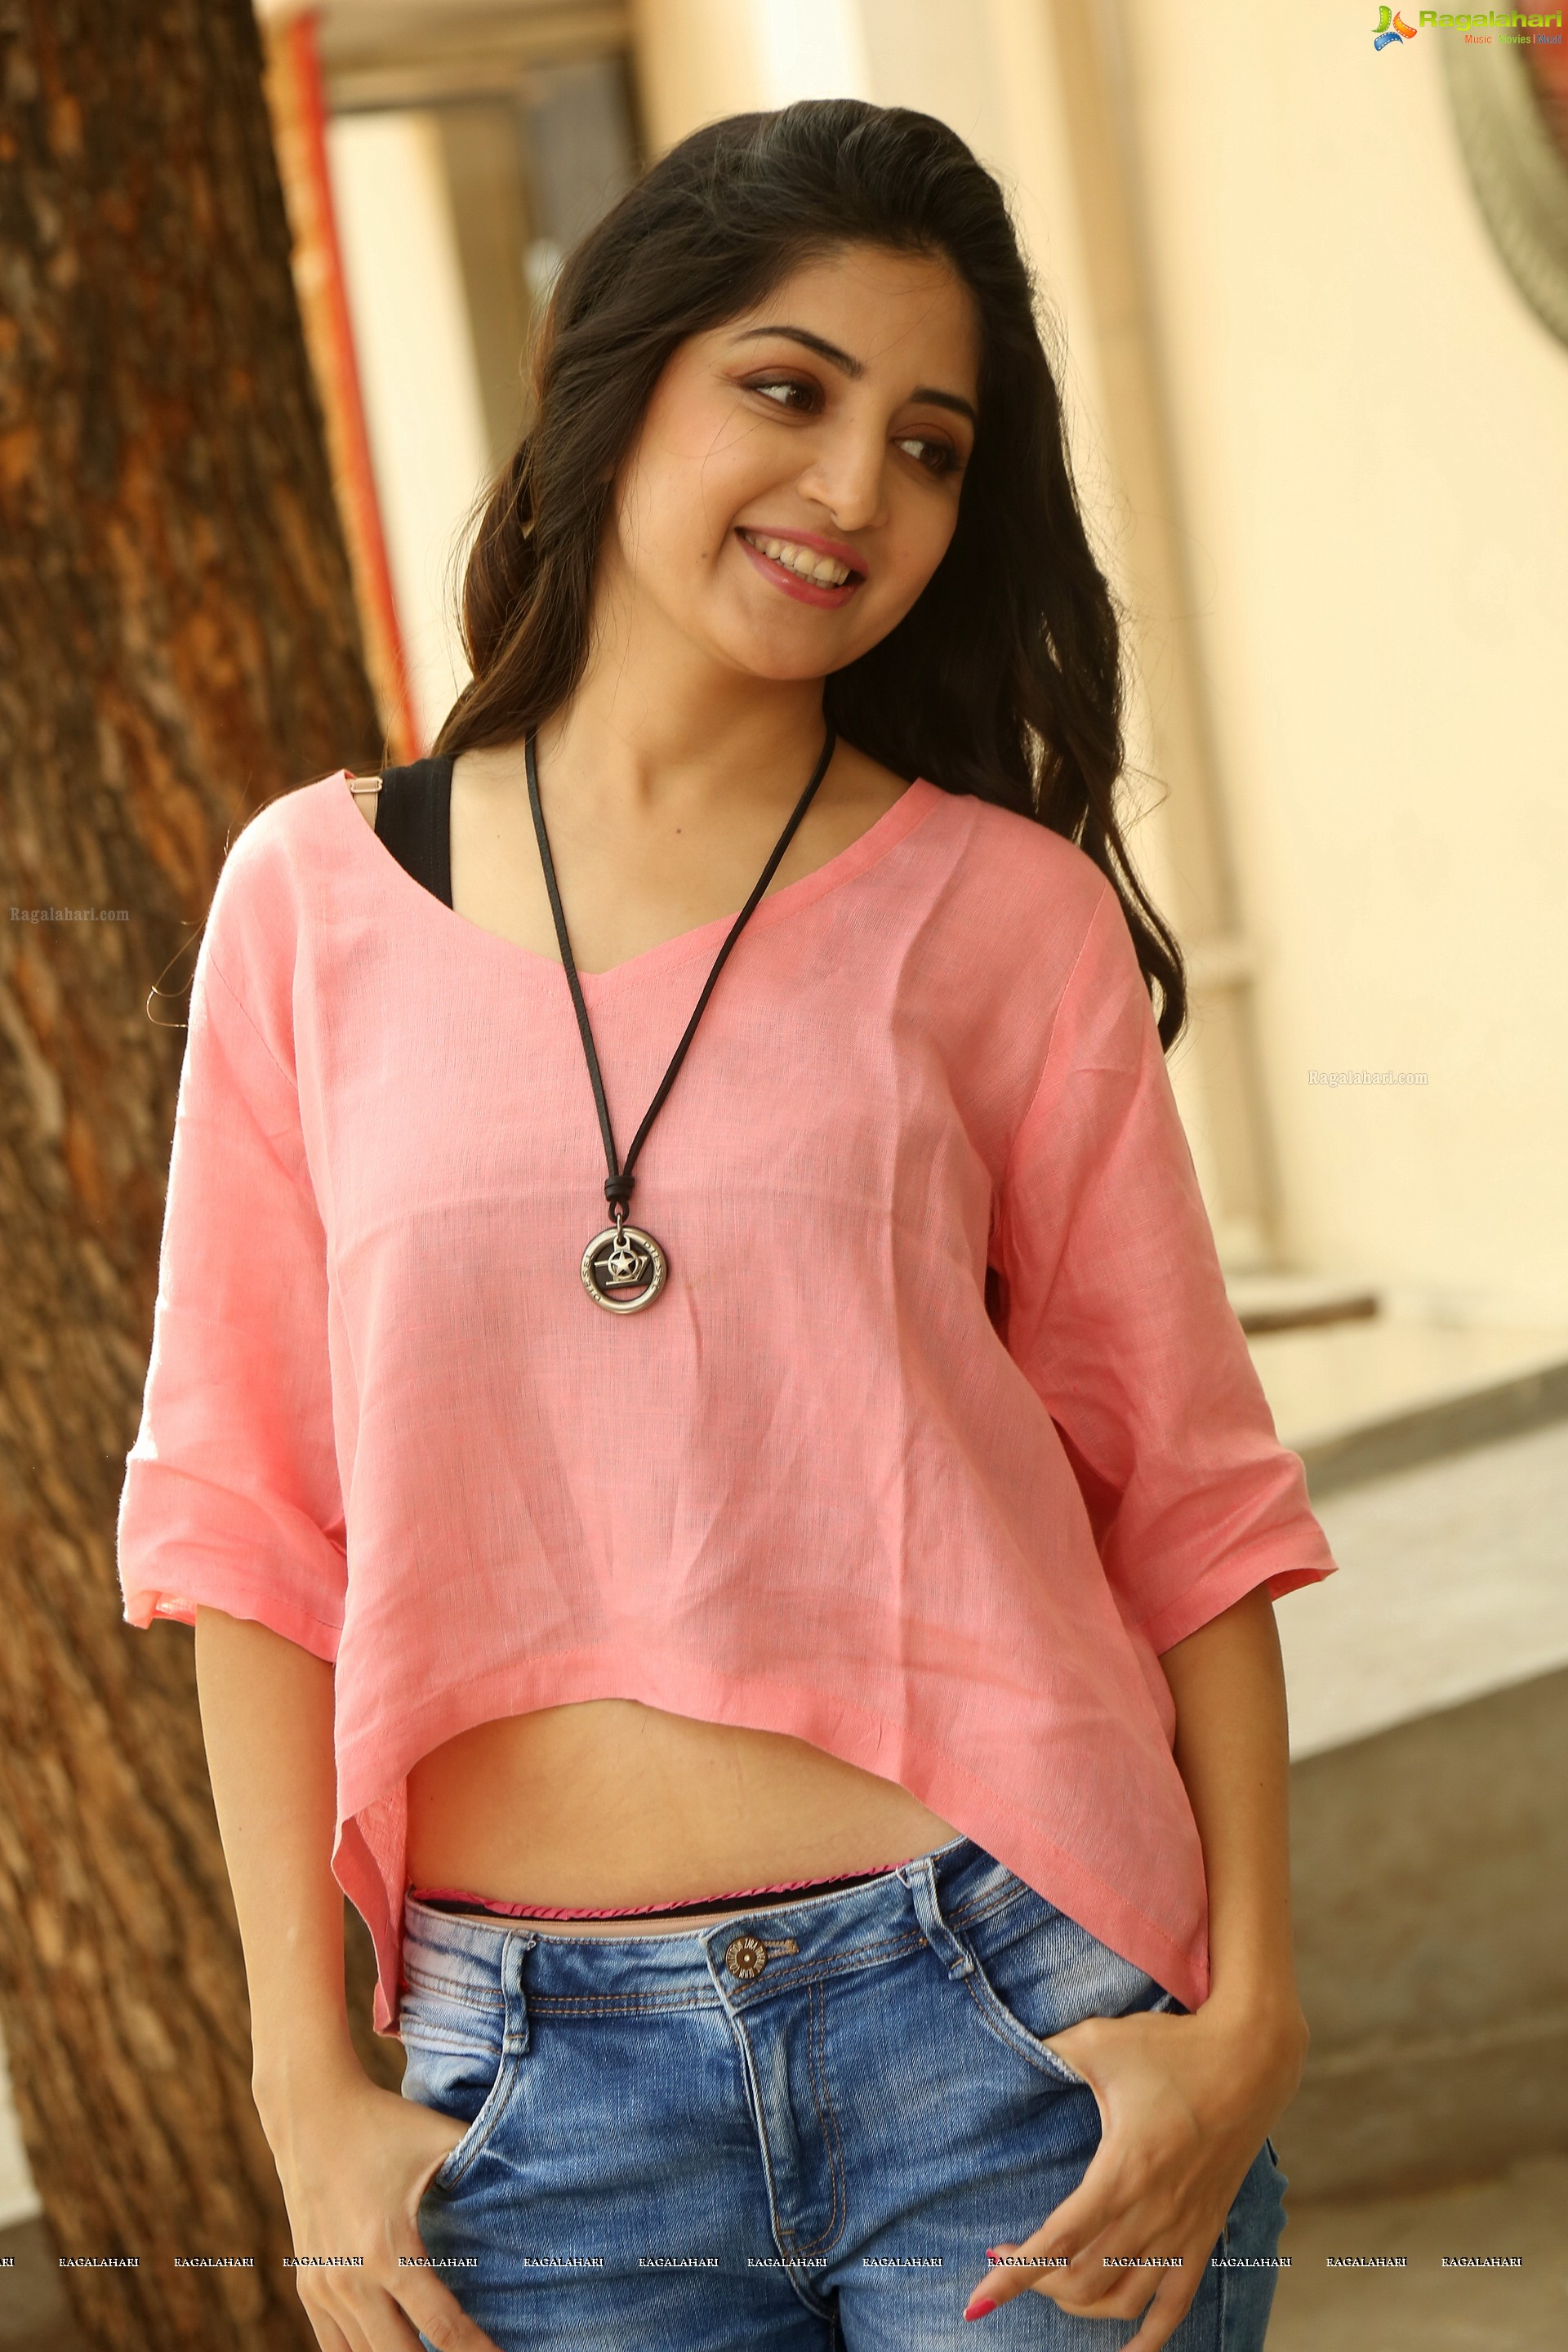 poonam kaur lal (high definition) image 14 | tollywood actress